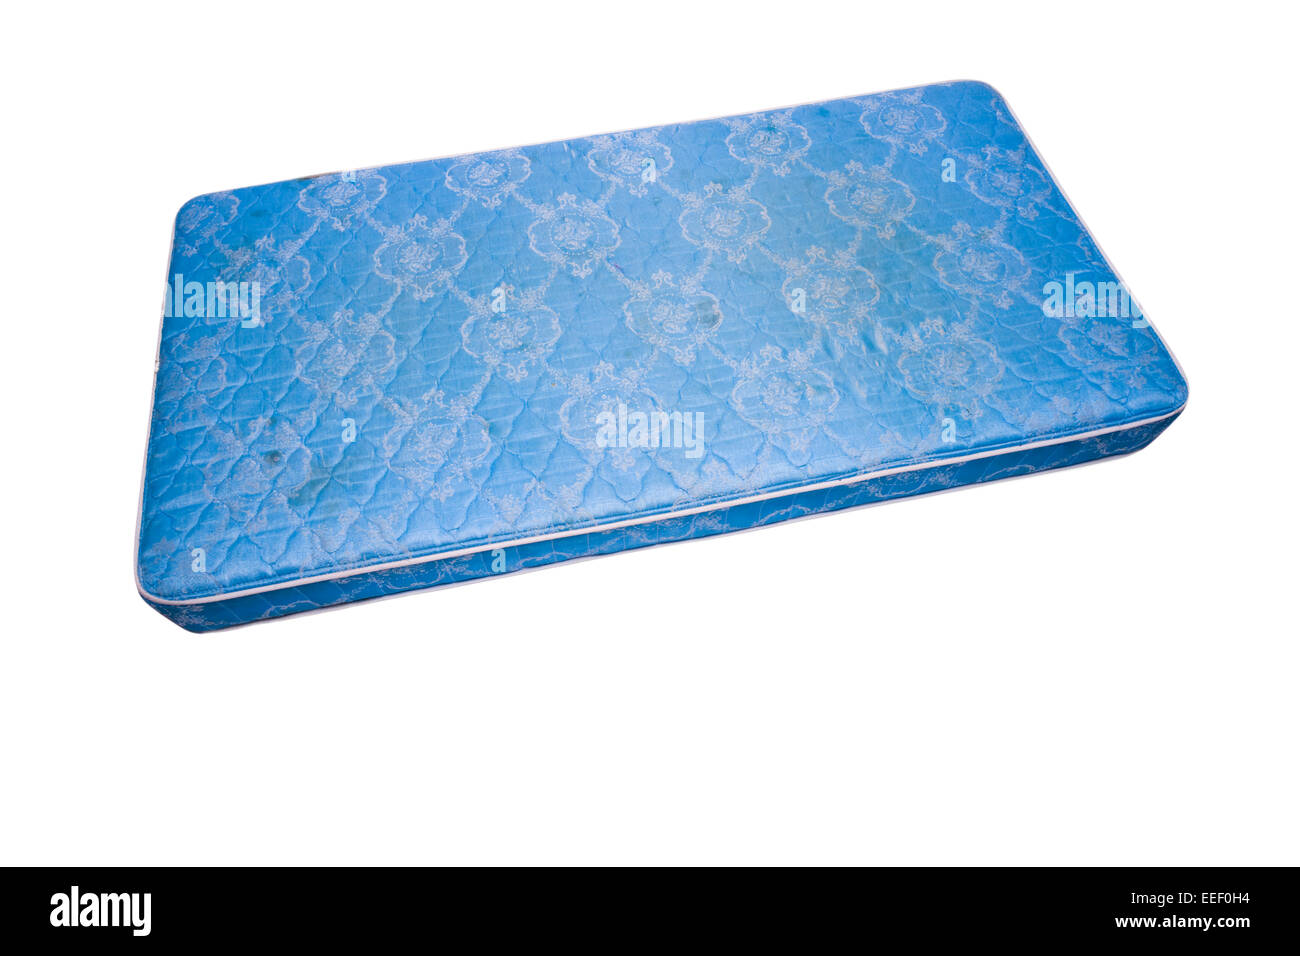 Old Mattress High Resolution Stock Photography And Images Alamy